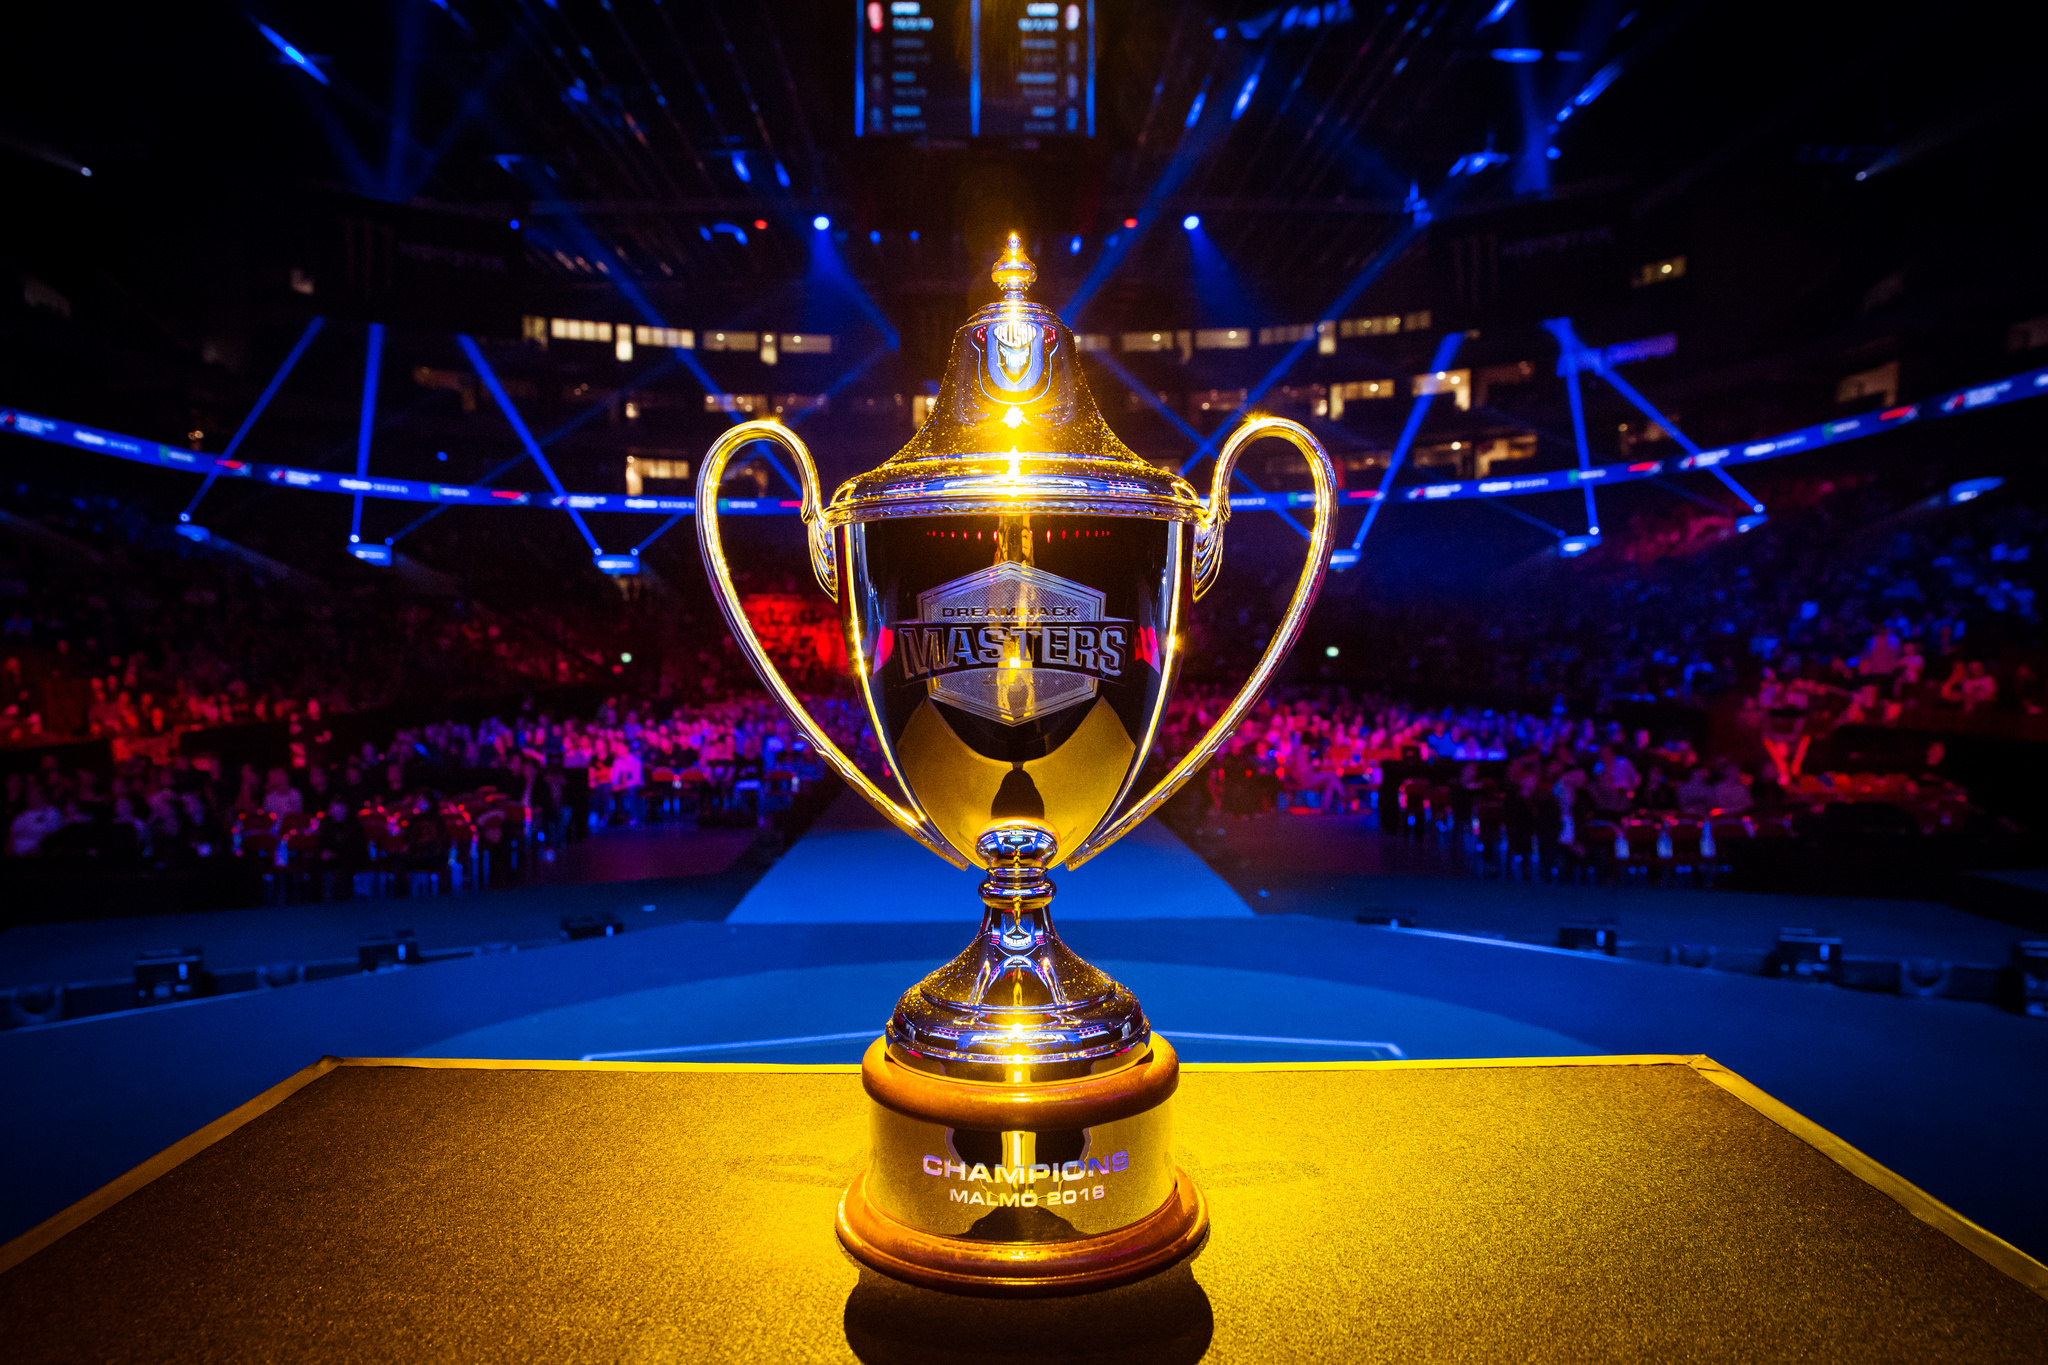 The DreamHack Masters trophy